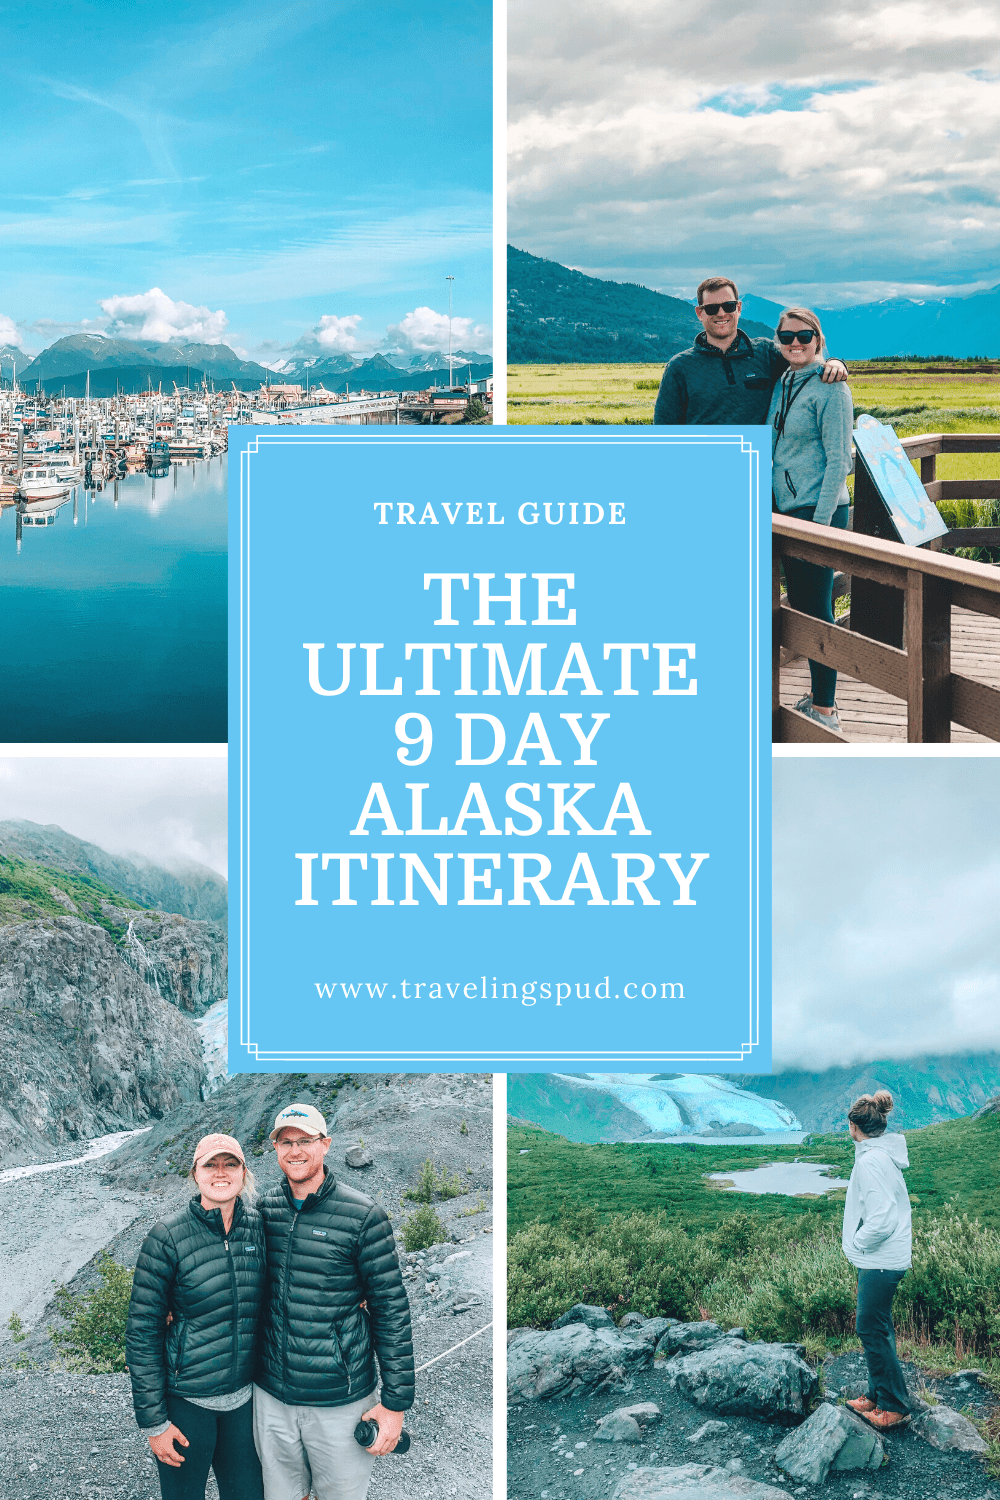 The Ultimate 9 Day Alaska Itinerary